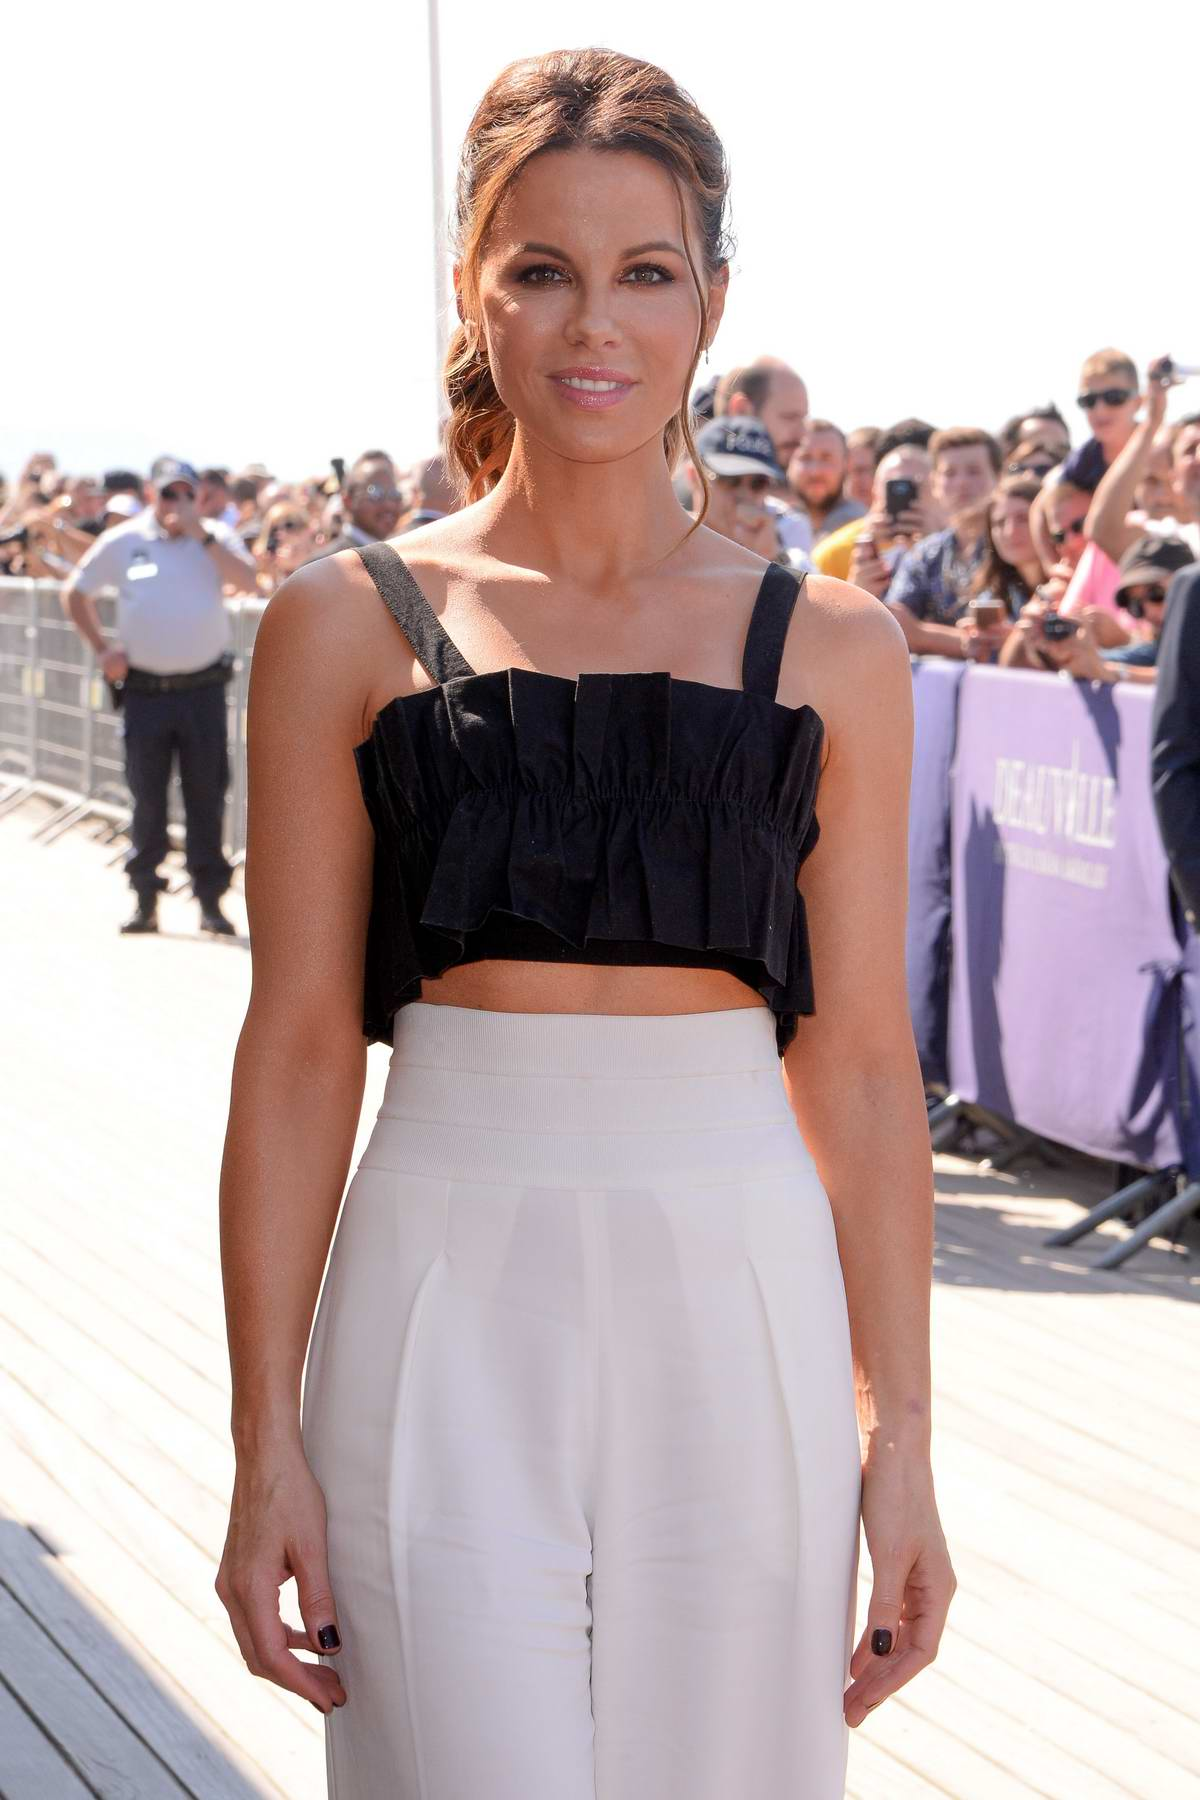 Kate Beckinsale attending a photocall during the 44th Deauville American Film Festival in Deauville, France